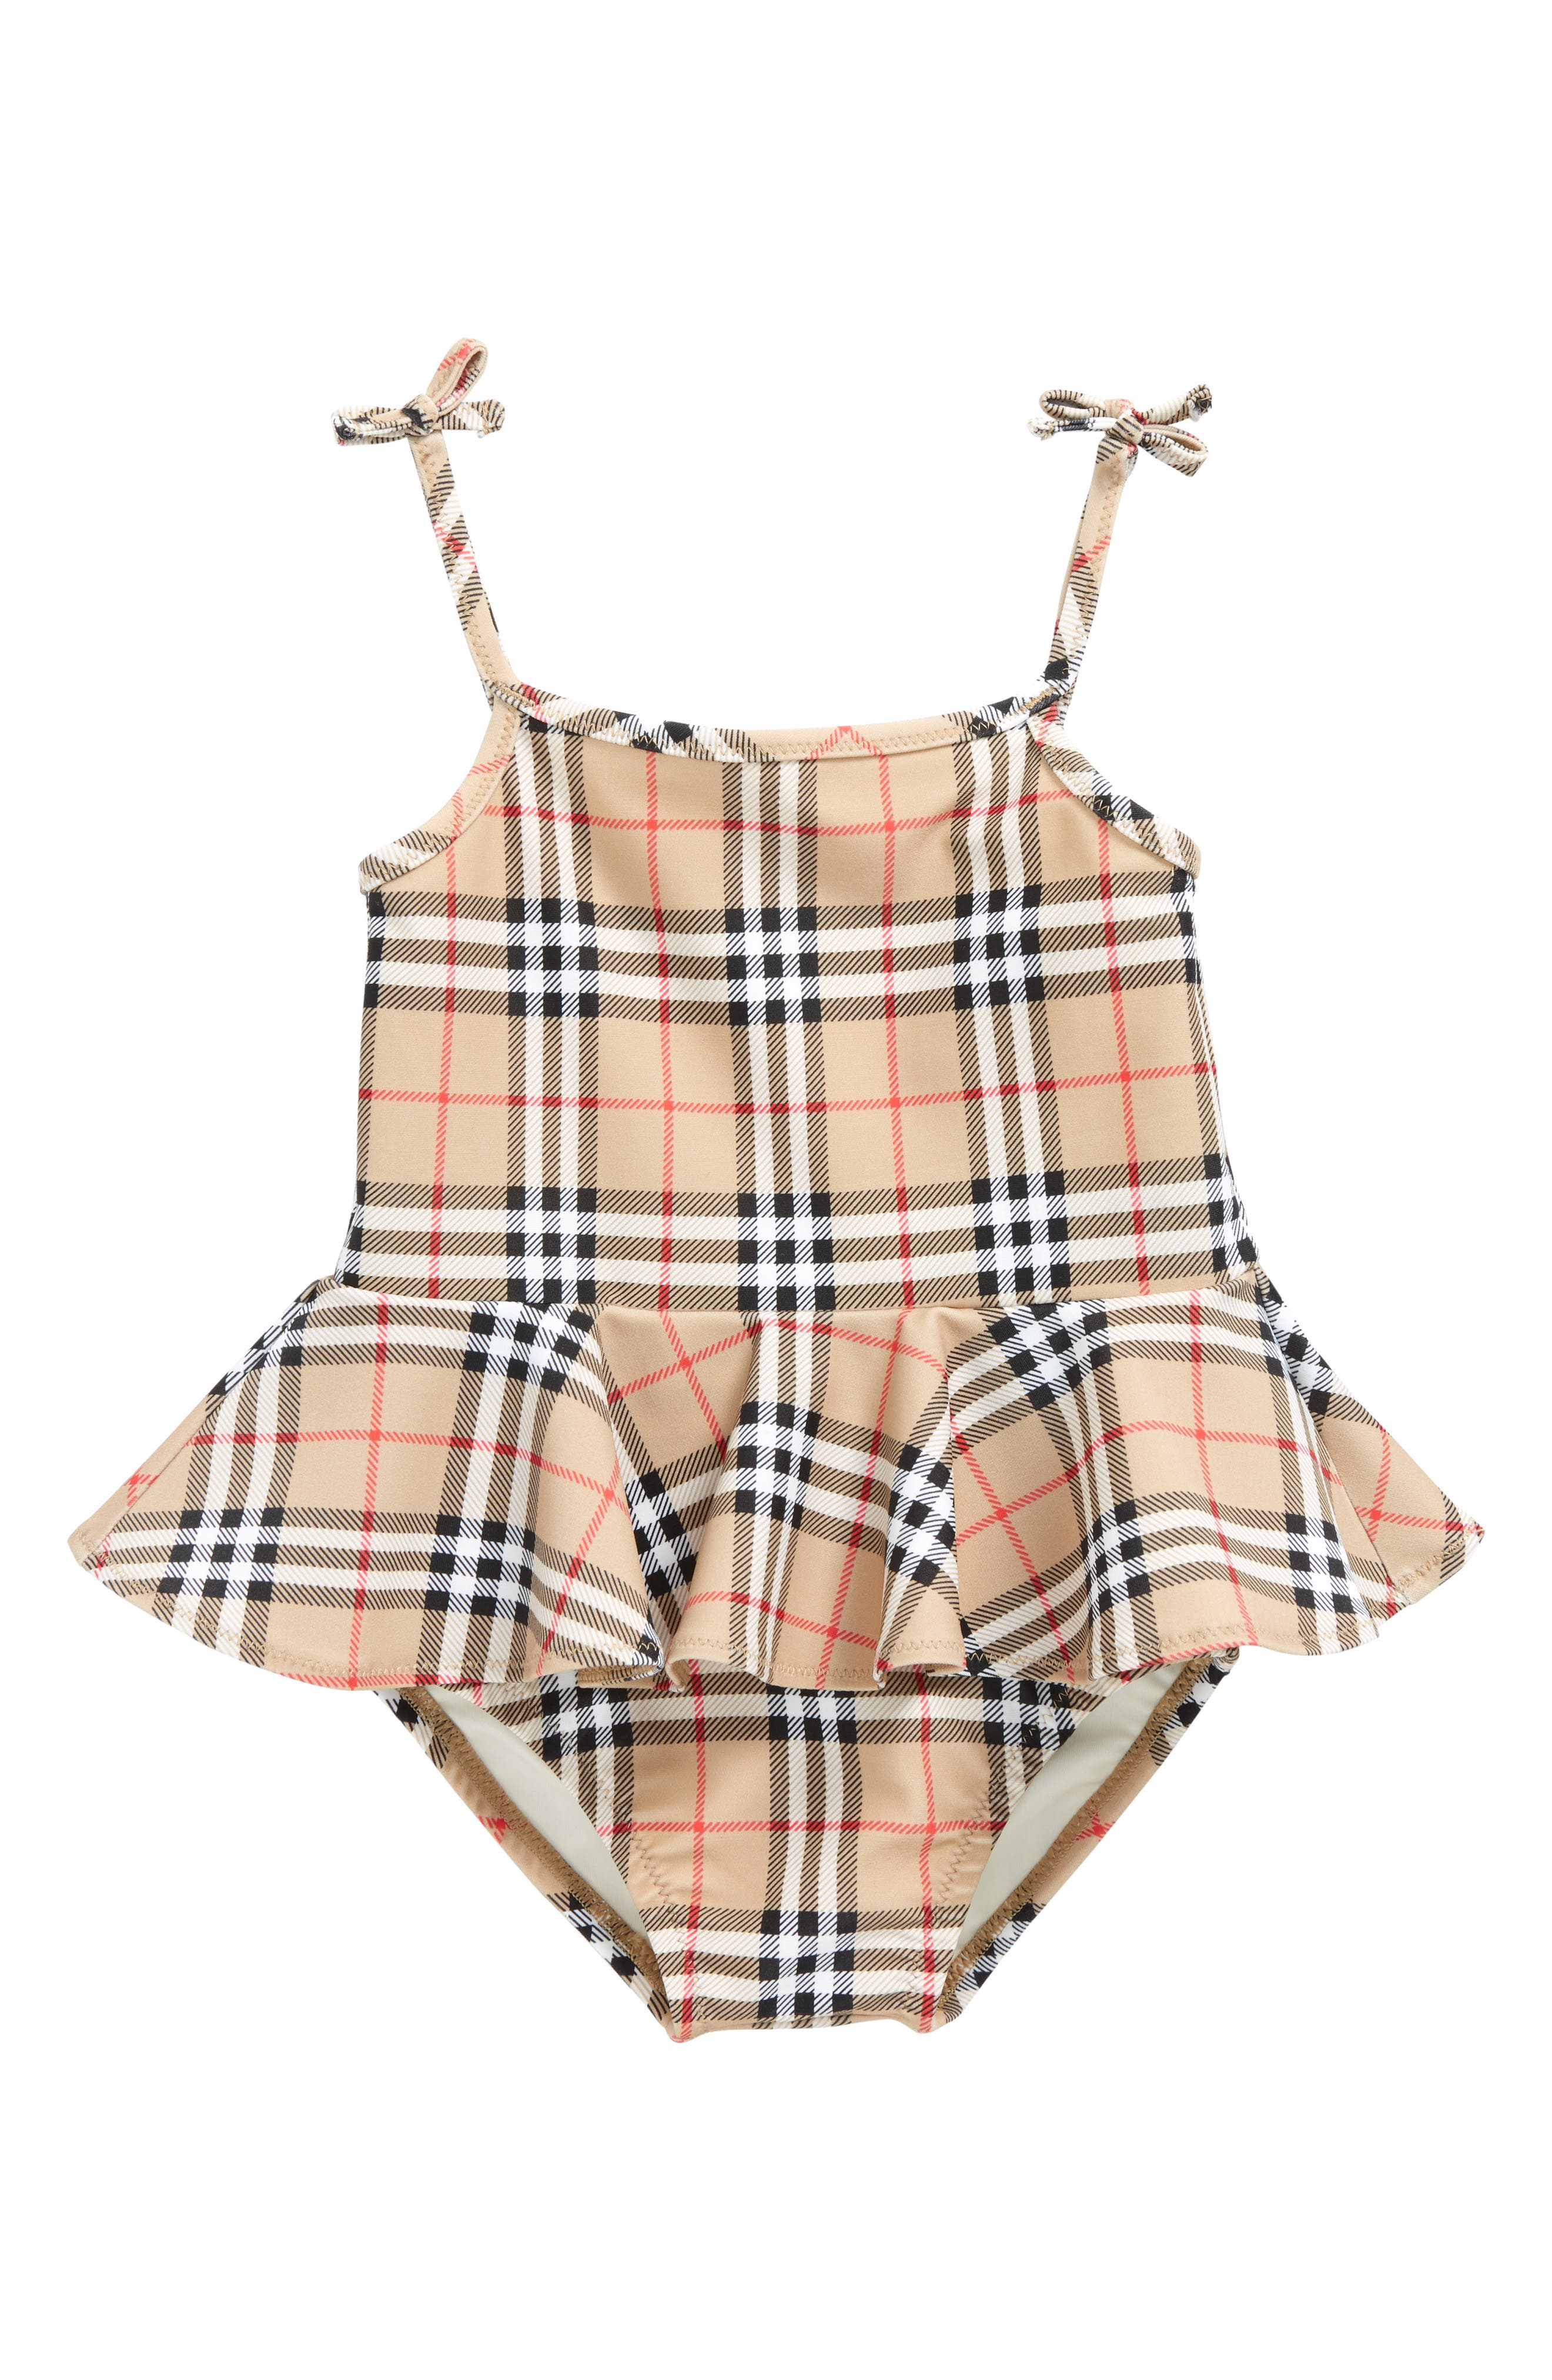 Luella Check Skirted One-Piece Swimsuit,                             Main thumbnail 1, color,                             Camel